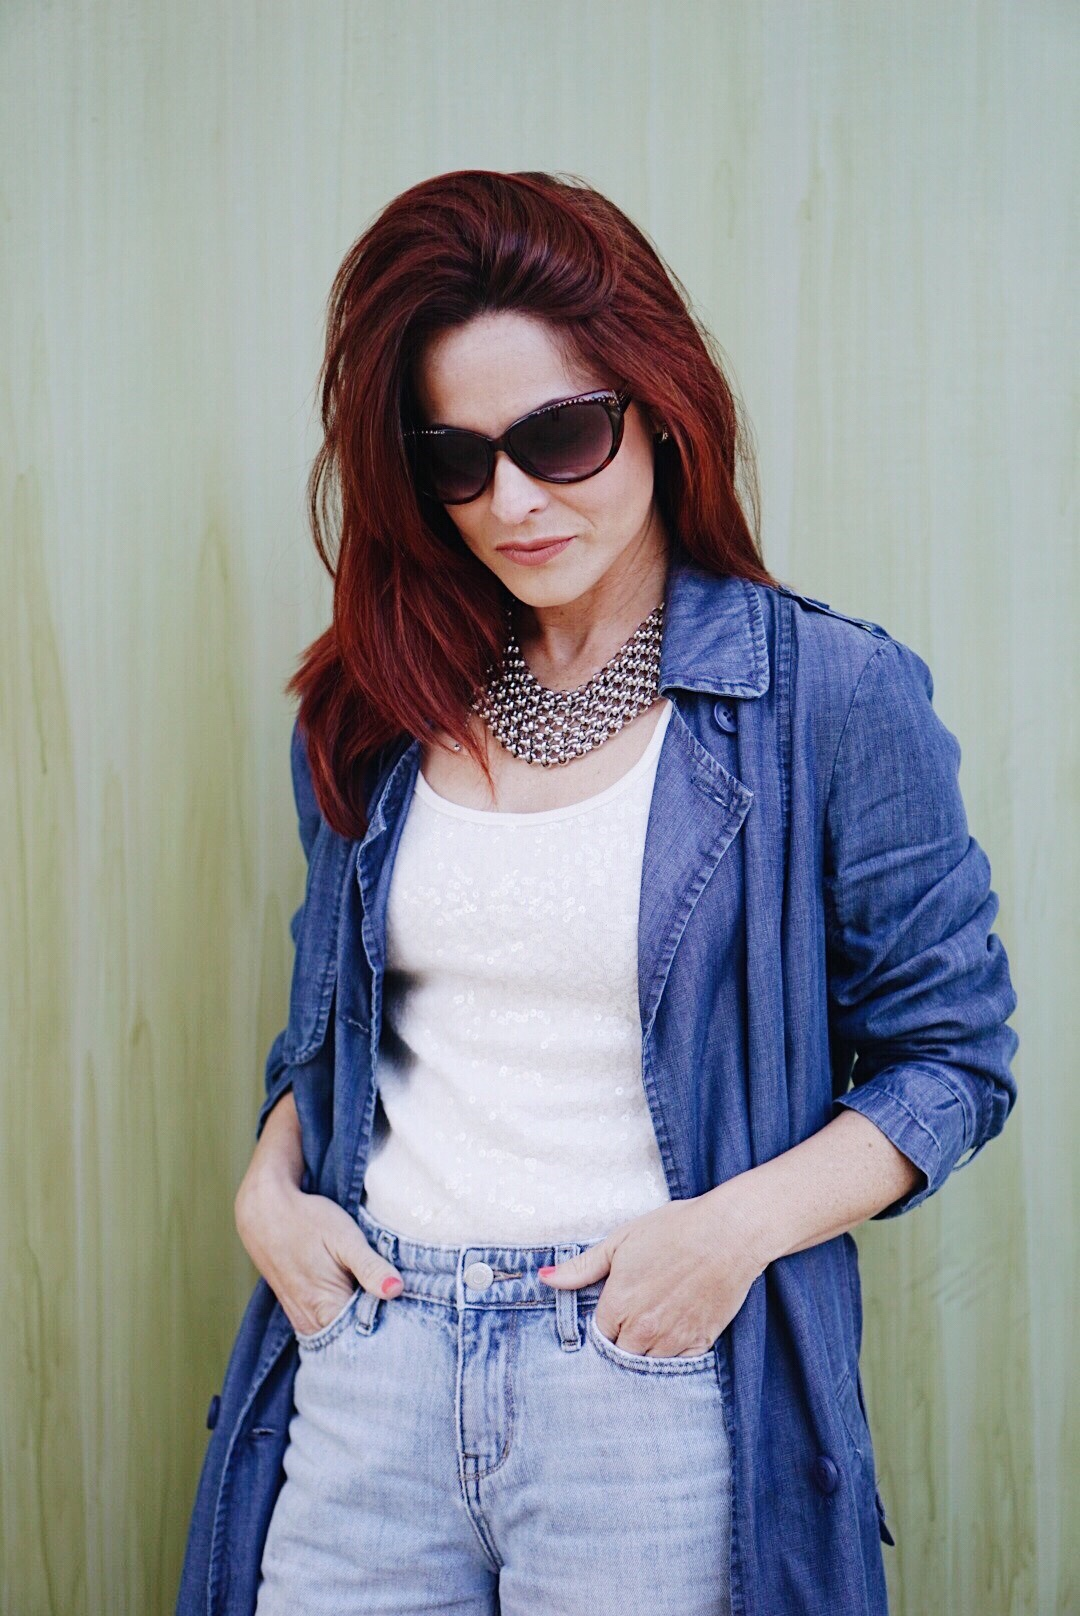 denim on denim ideas, bib necklaces, red hair inspiration, trench coat outfit ideas,